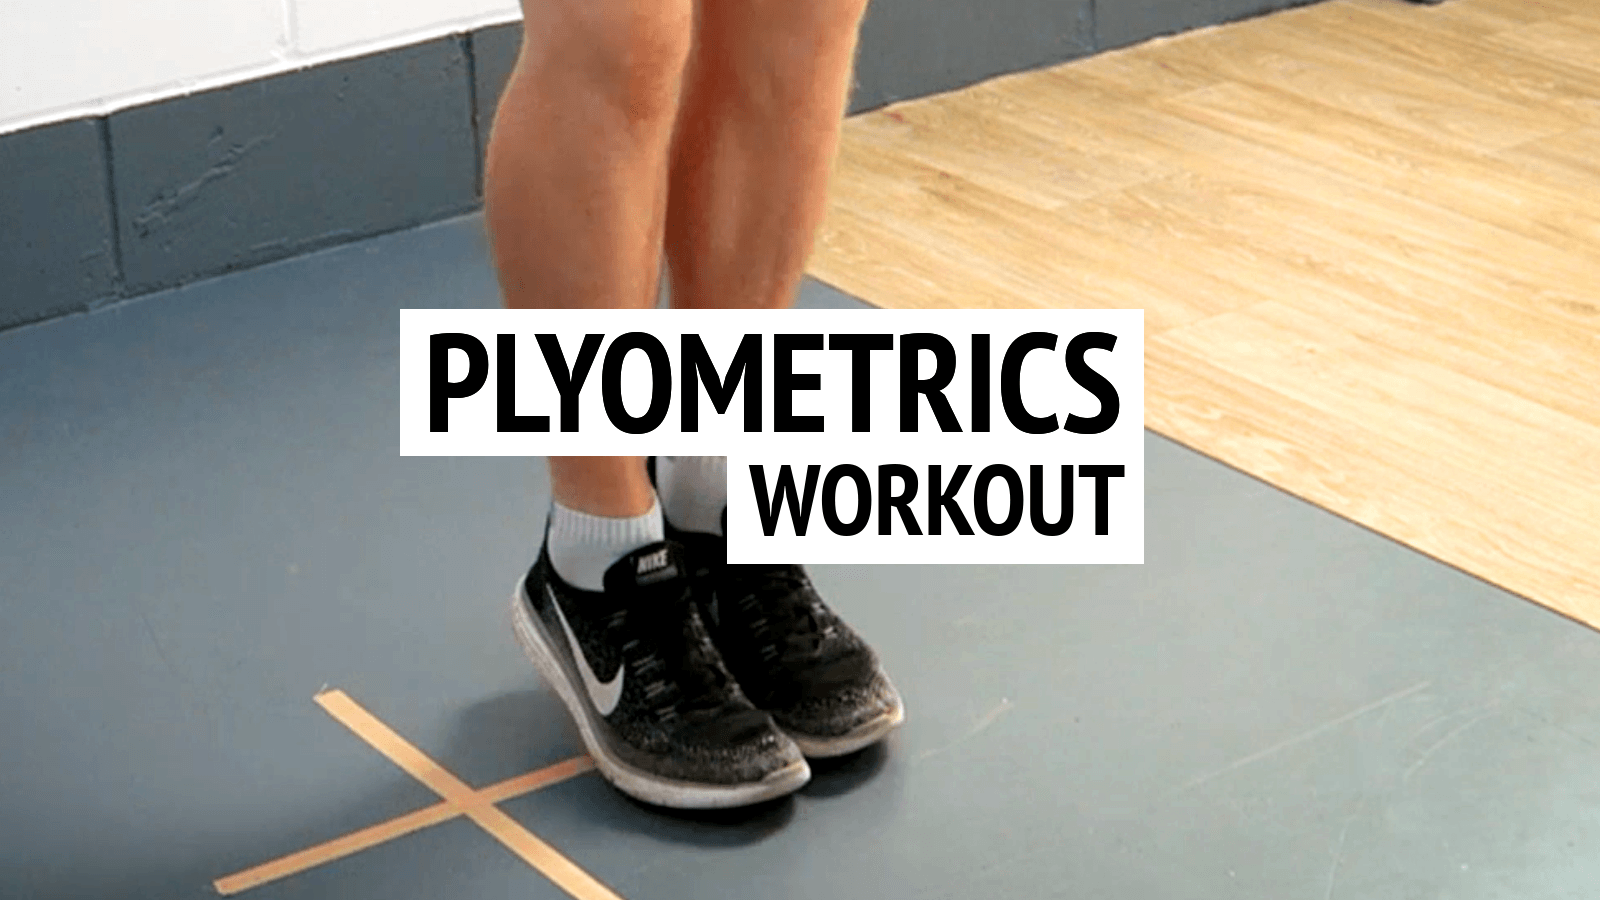 Plyometrics for Runners: Learn Simple Plyometric Running Drills for Speed